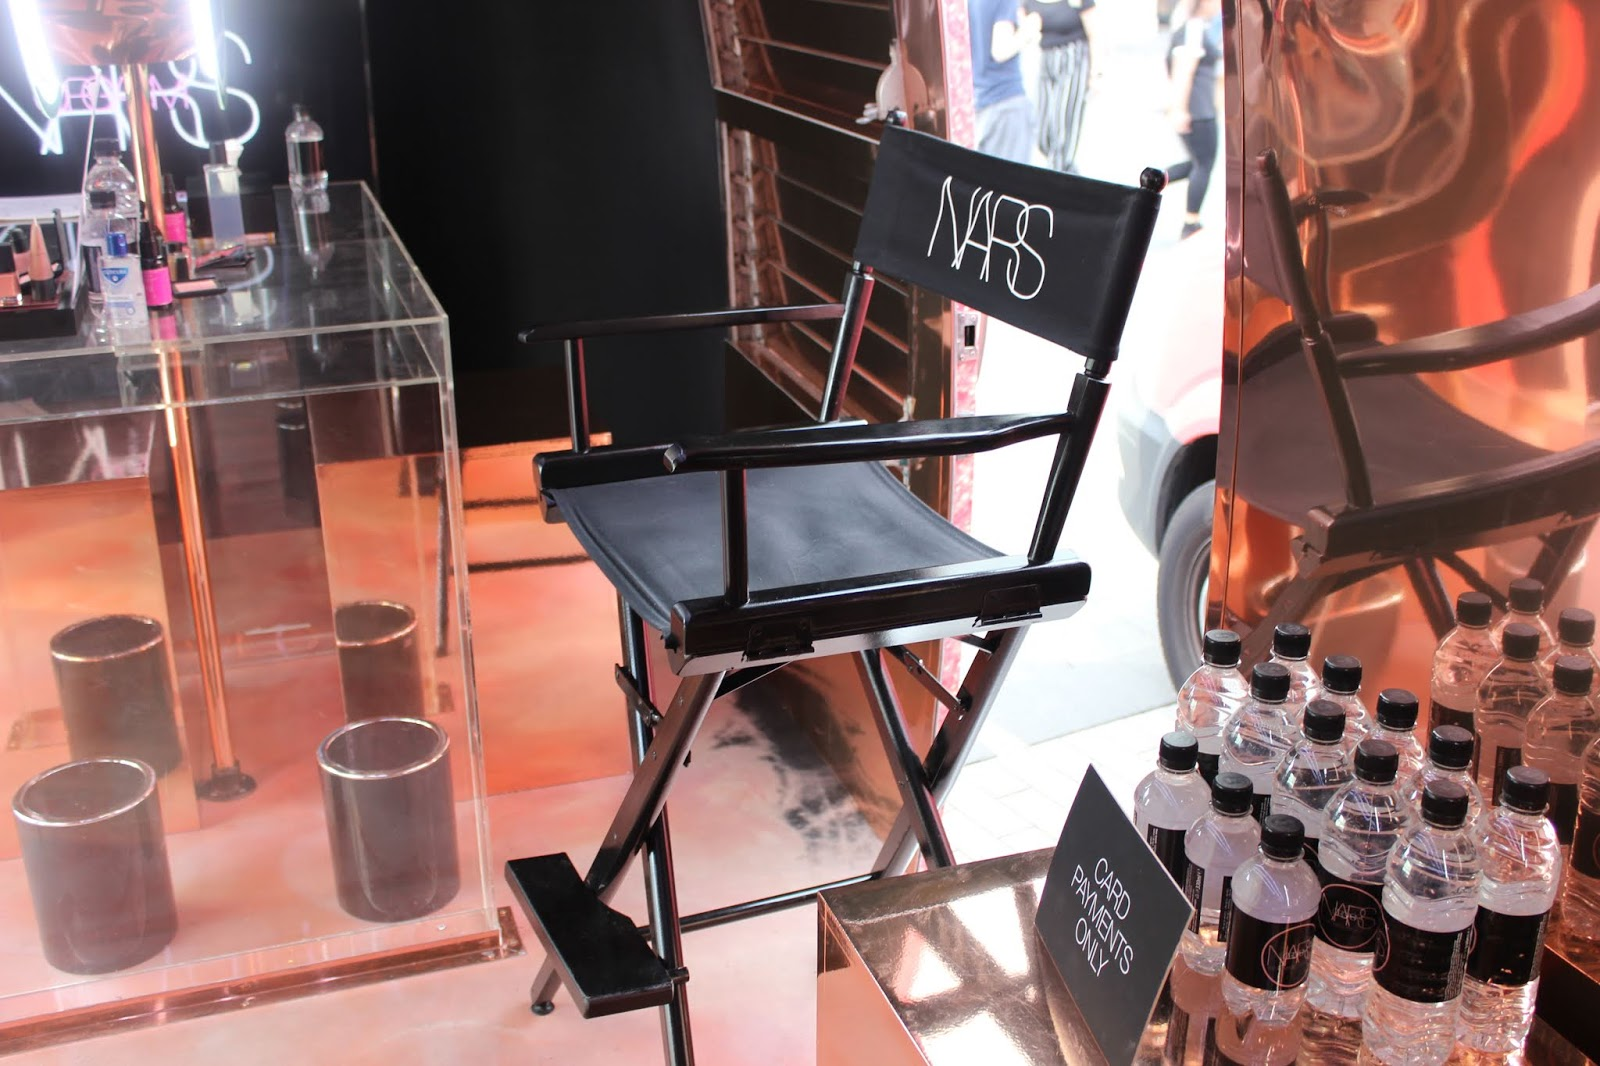 A directors' chair with NARS written on it